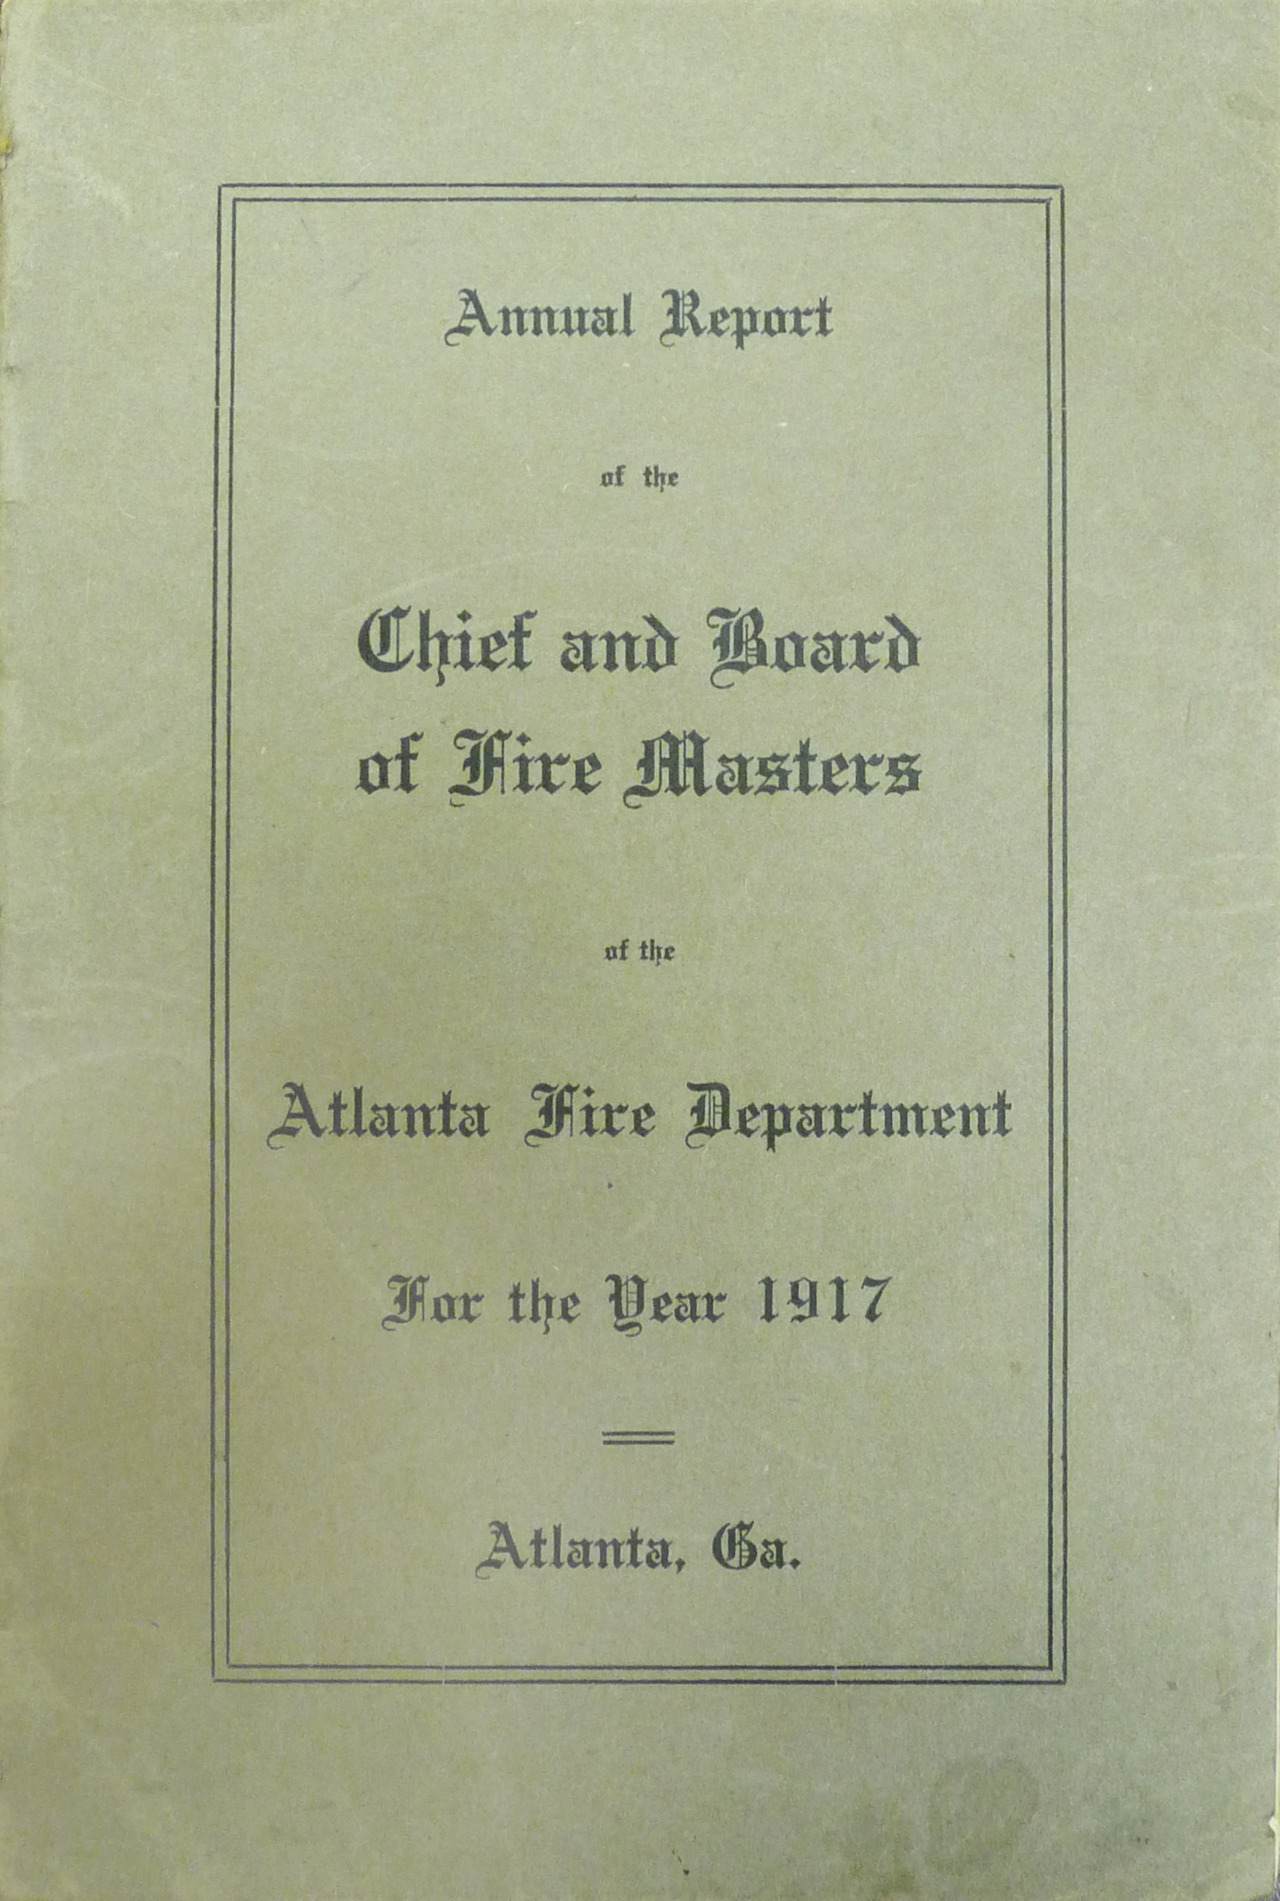 The Great Atlanta Fire of 1917 is over, but the struggle to rebuild has just begun. Atlantans are slowly beginning to comprehend the devastation. Over 300 acres and 1,938 buildings were destroyed. Property loss amounted to $5,500,000 (over $92,000,000 today). A little over half of the damage was covered by insurance. Almost 80 percent of the buildings lost had wood shingles. The fires will continue to smolder the rest of the week. Miraculously, only ten injuries were reported and no lives were lost in the fire. This concludes the Great Atlanta Fire of 1917 Live Blog Event. We hope you have enjoyed this experience. This event was edited by Trevor Beemon, Manager of Digital Communications at the Atlanta History Center. All of the images and audio clips included in this event are courtesy of the Kenan Research Center at the Atlanta History Center. Special thanks to Sue VerHoef, Archivist; Paige Adair, Manager of Reprographic Services; Heather Thayer Culligan, Collections Manager; and Melanie Stephan, Senior Archivist, for their help and support. Tune in May 23rd when guest blogger Sue VerHoef will address your questions about the fire, and explain the impact it had on our city.